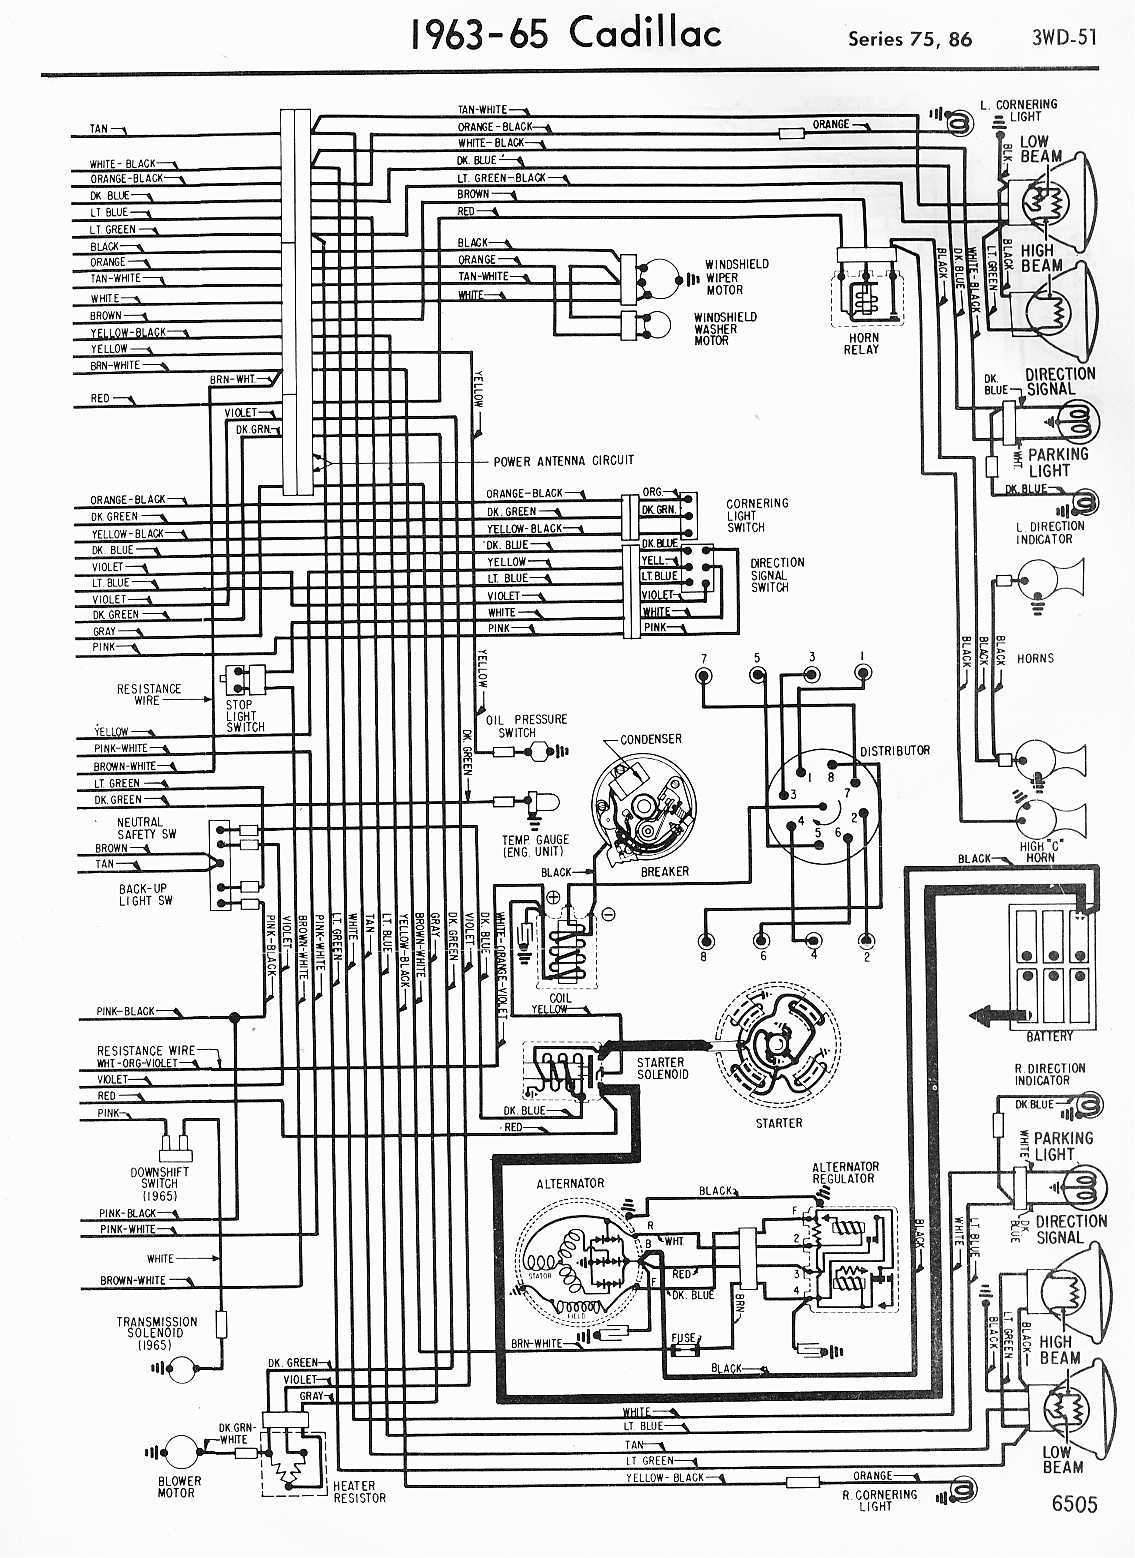 Brilliant 03 Cadillac Cts Fuse Box Wiring Library Wiring Cloud Timewinrebemohammedshrineorg